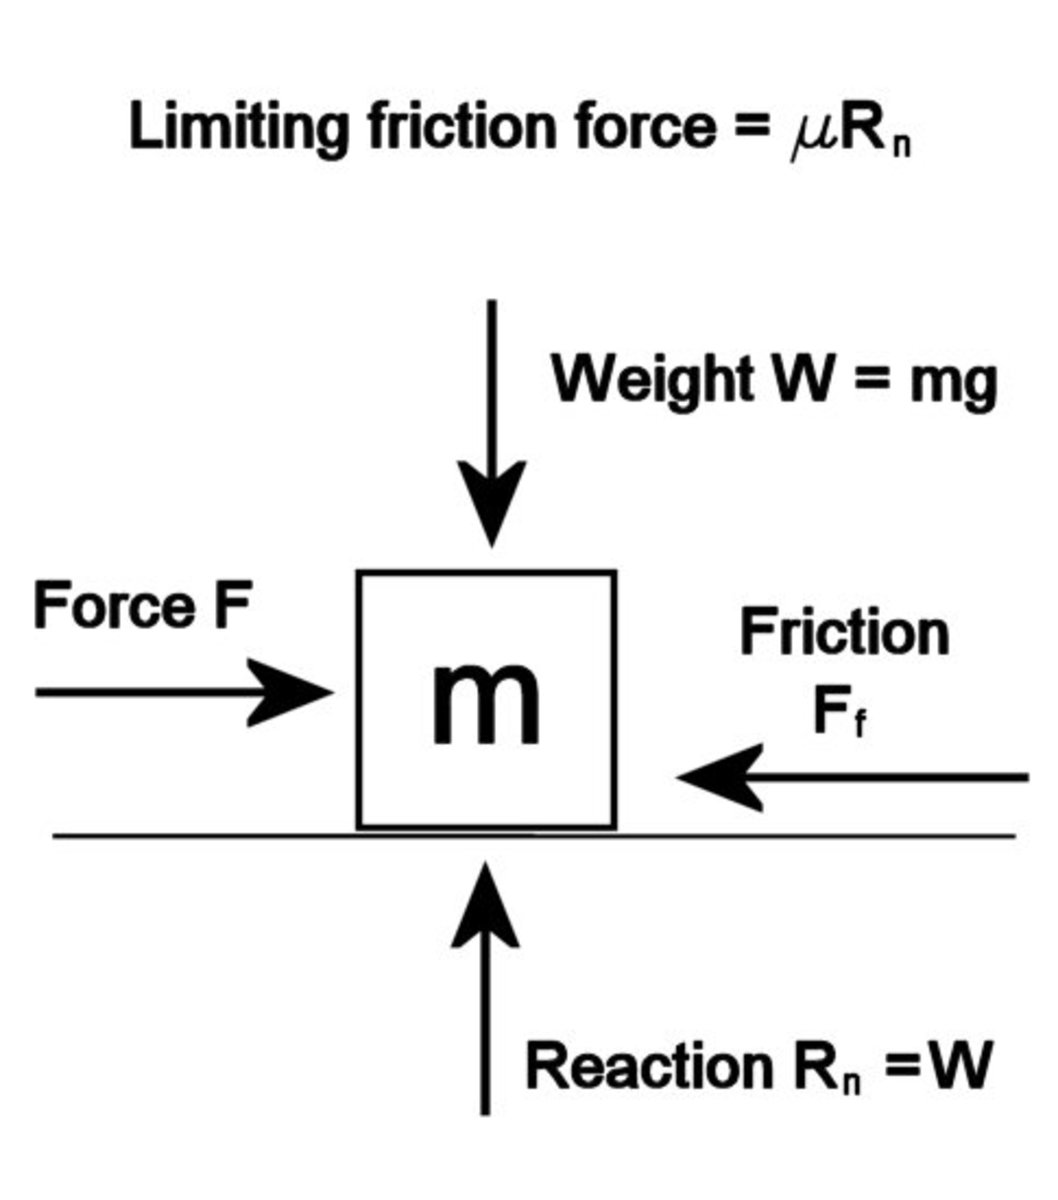 Forces acting on a mass when a force attempts to slide it along a surface. When the mass is just about to slide, the friction force Ff reaches a maximum value μRn